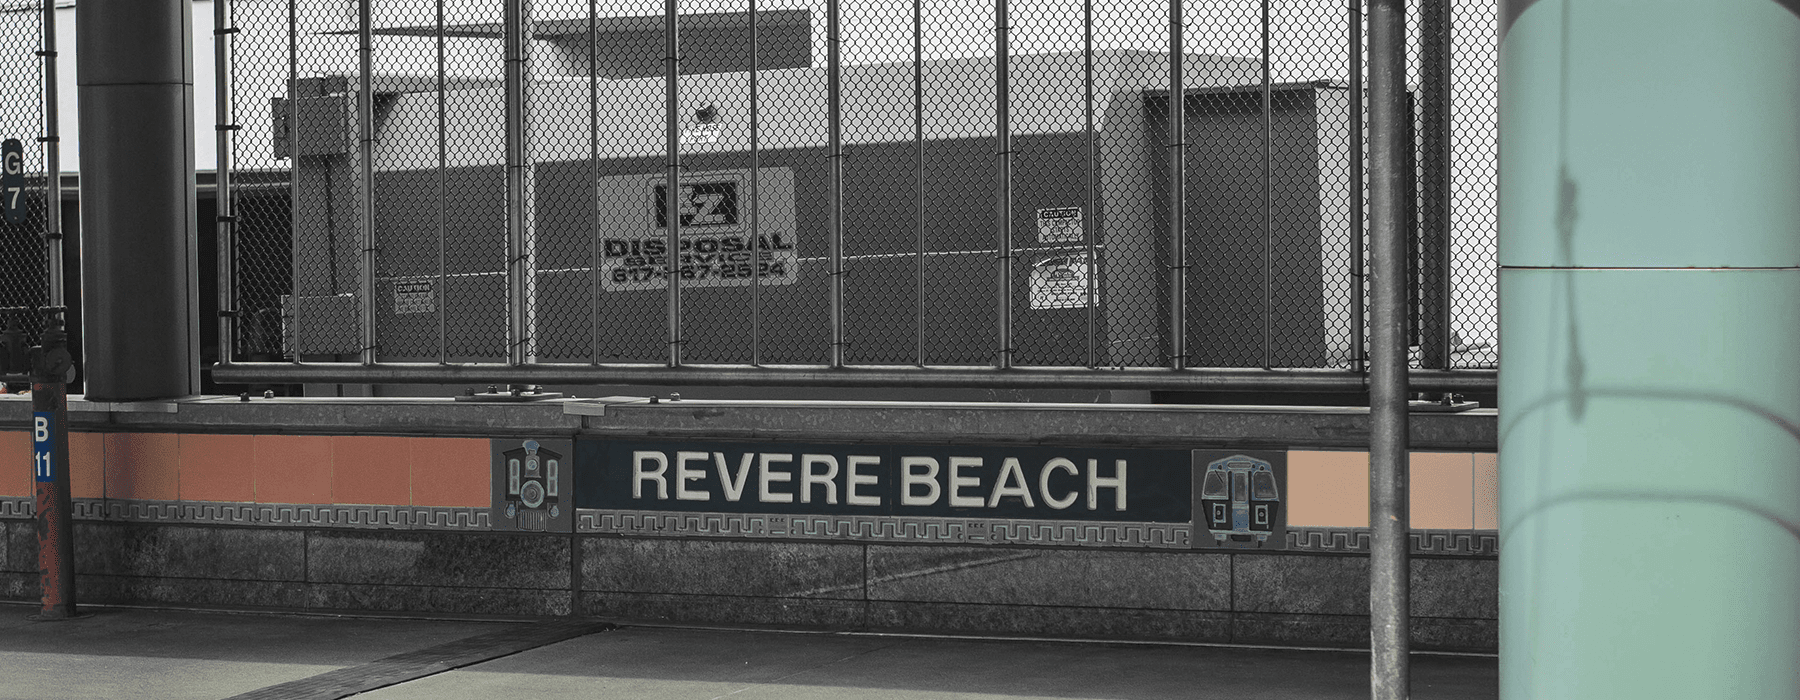 lifestyle image of signage for revere beach